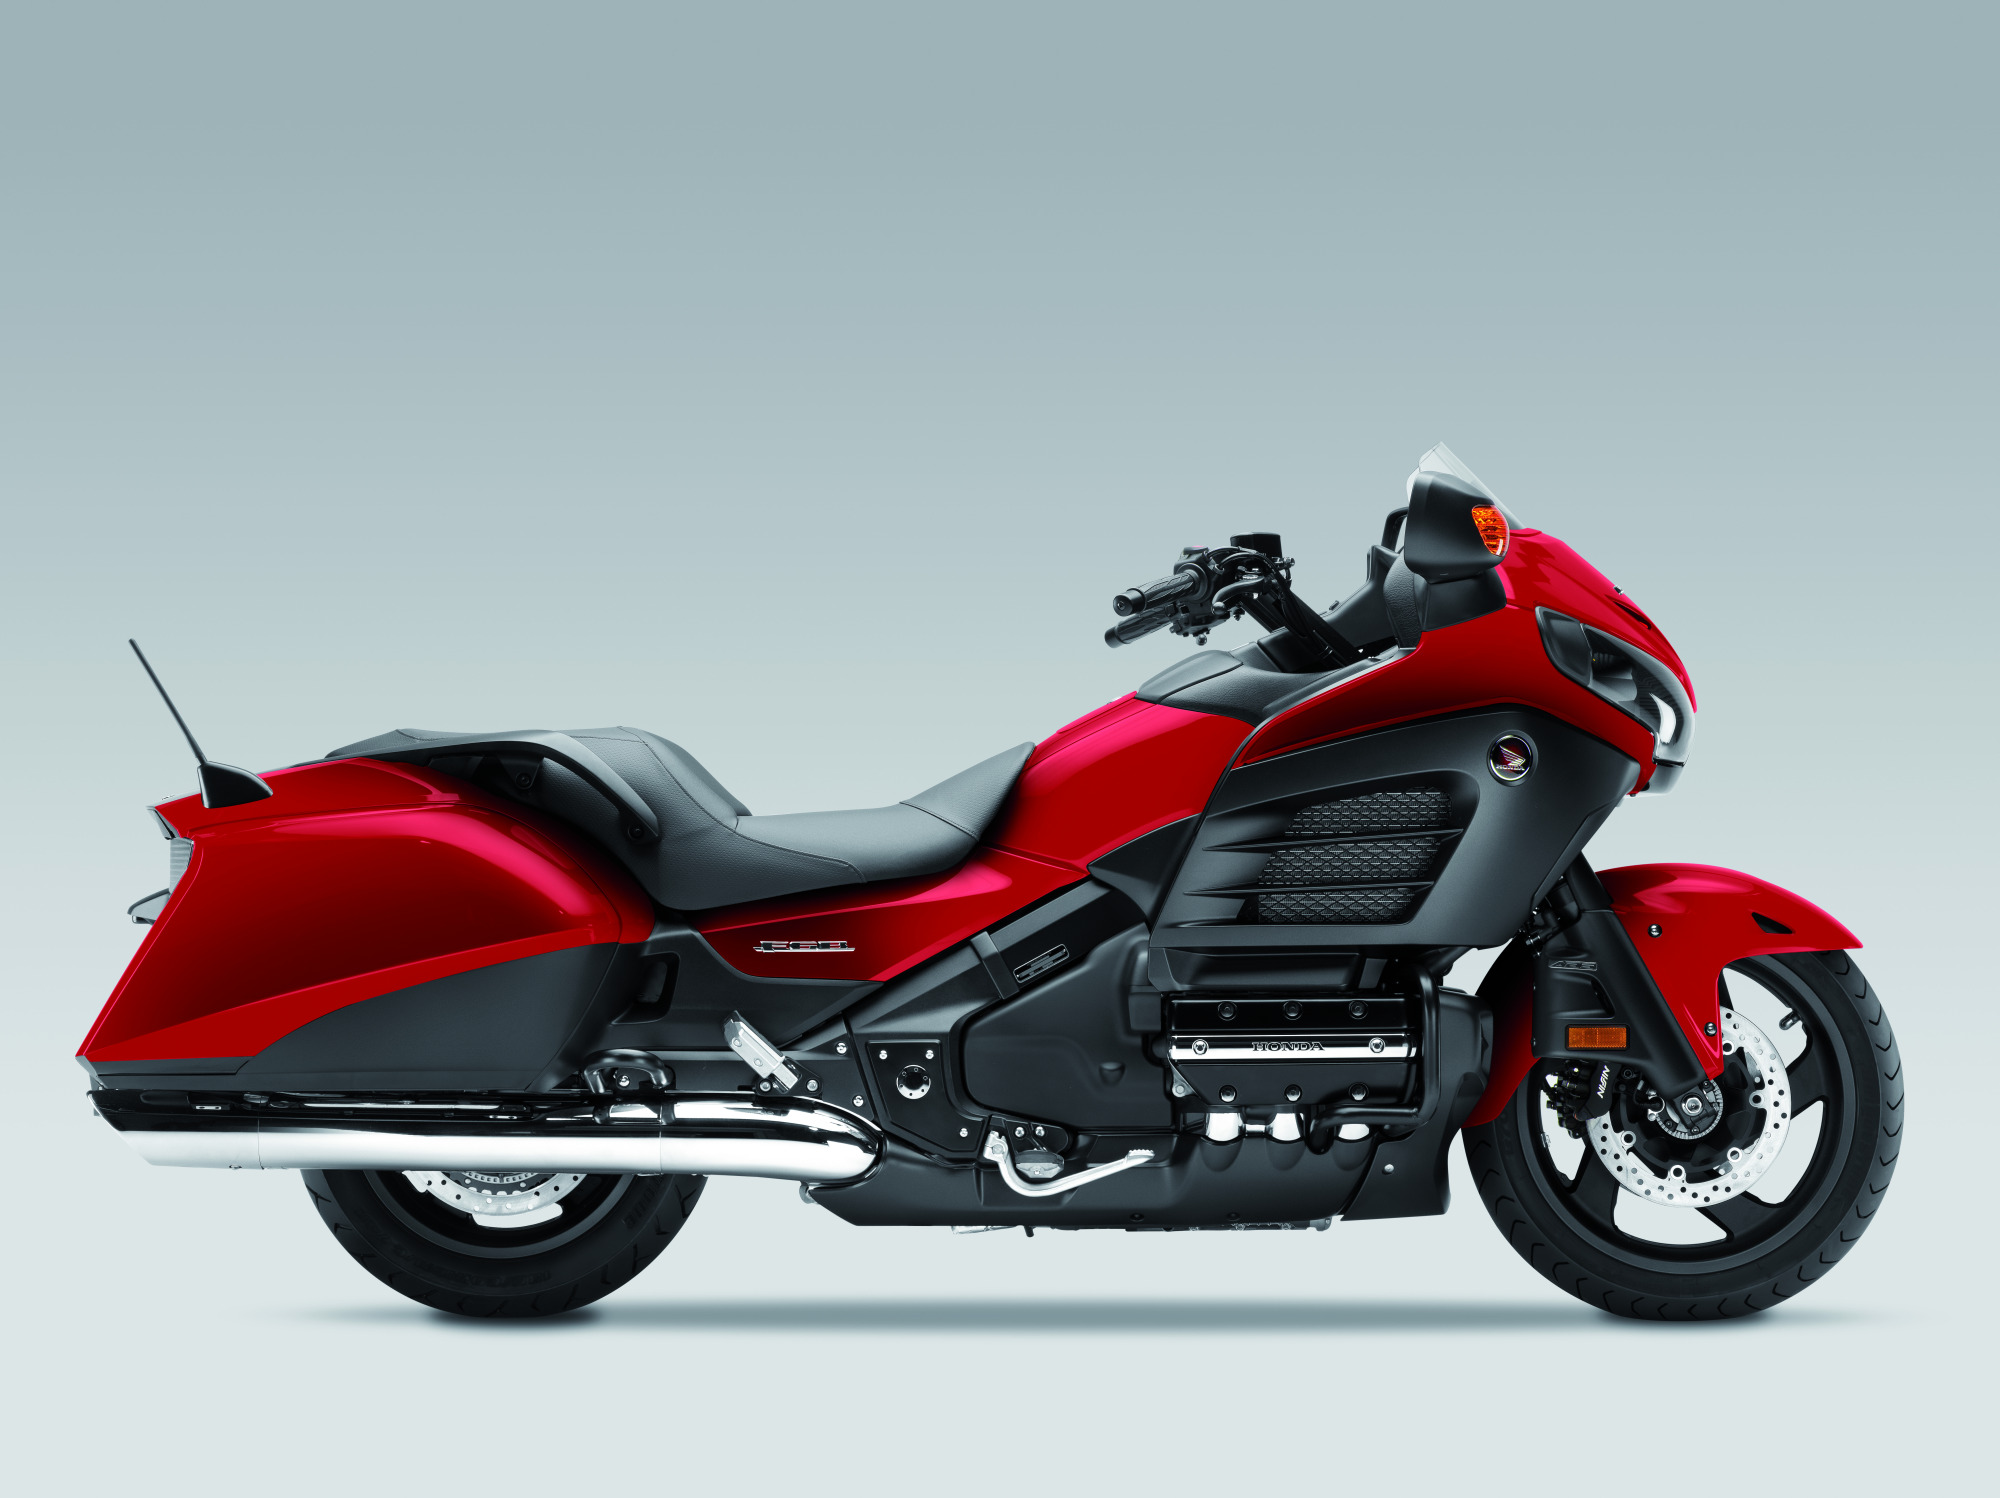 HONDA Goldwing F6B 2014 - Tourer